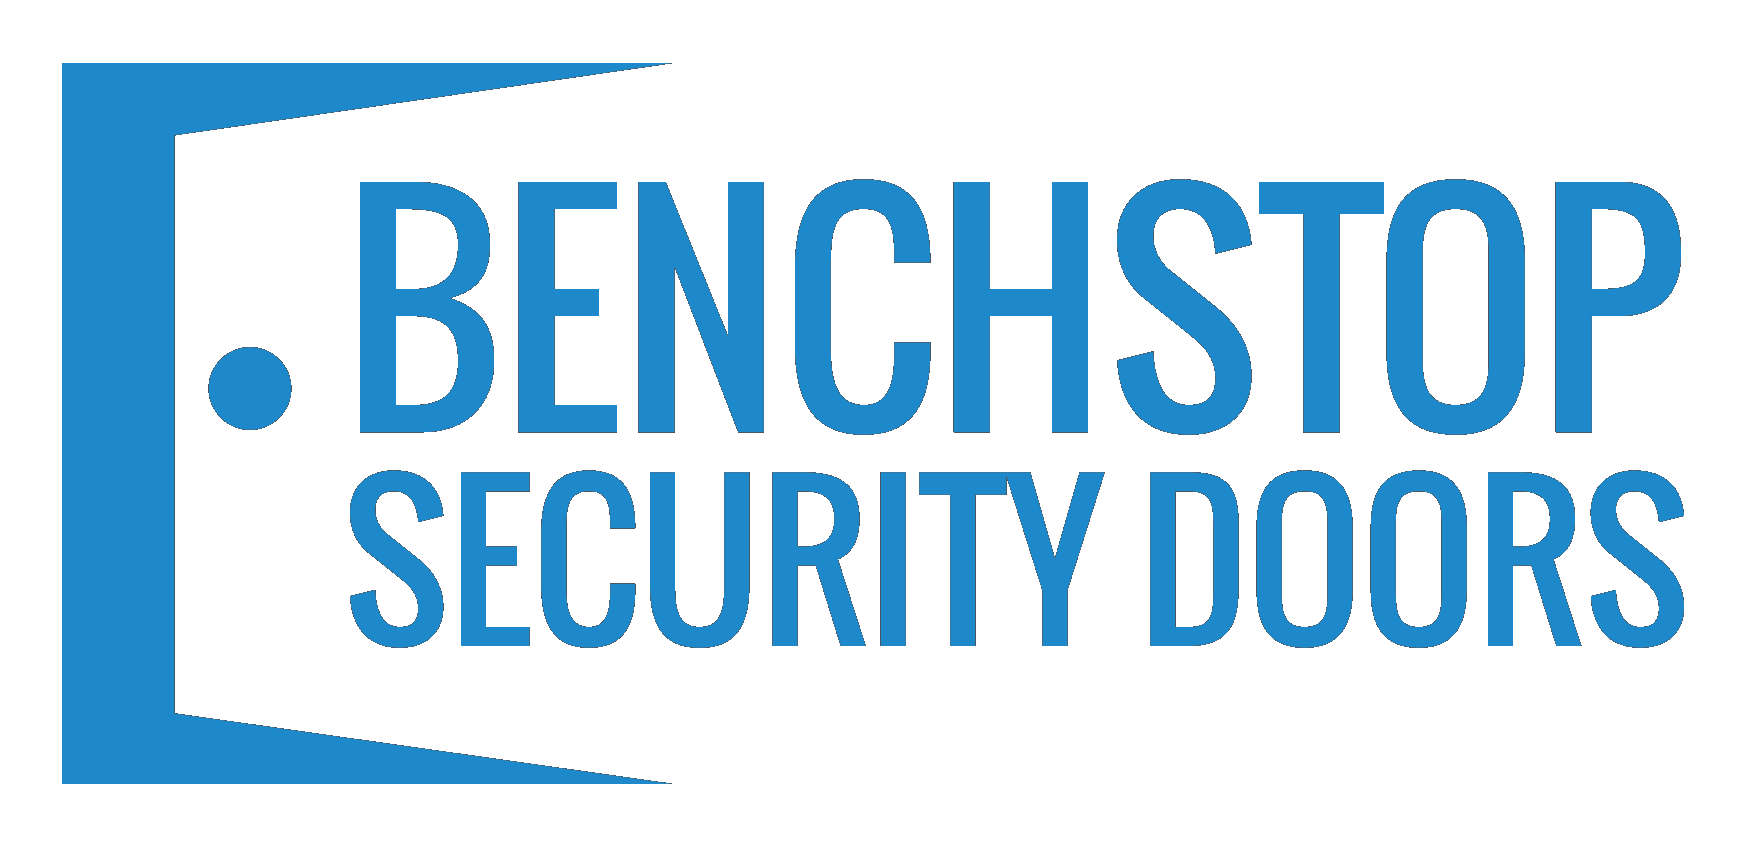 Benchstop Security Doors